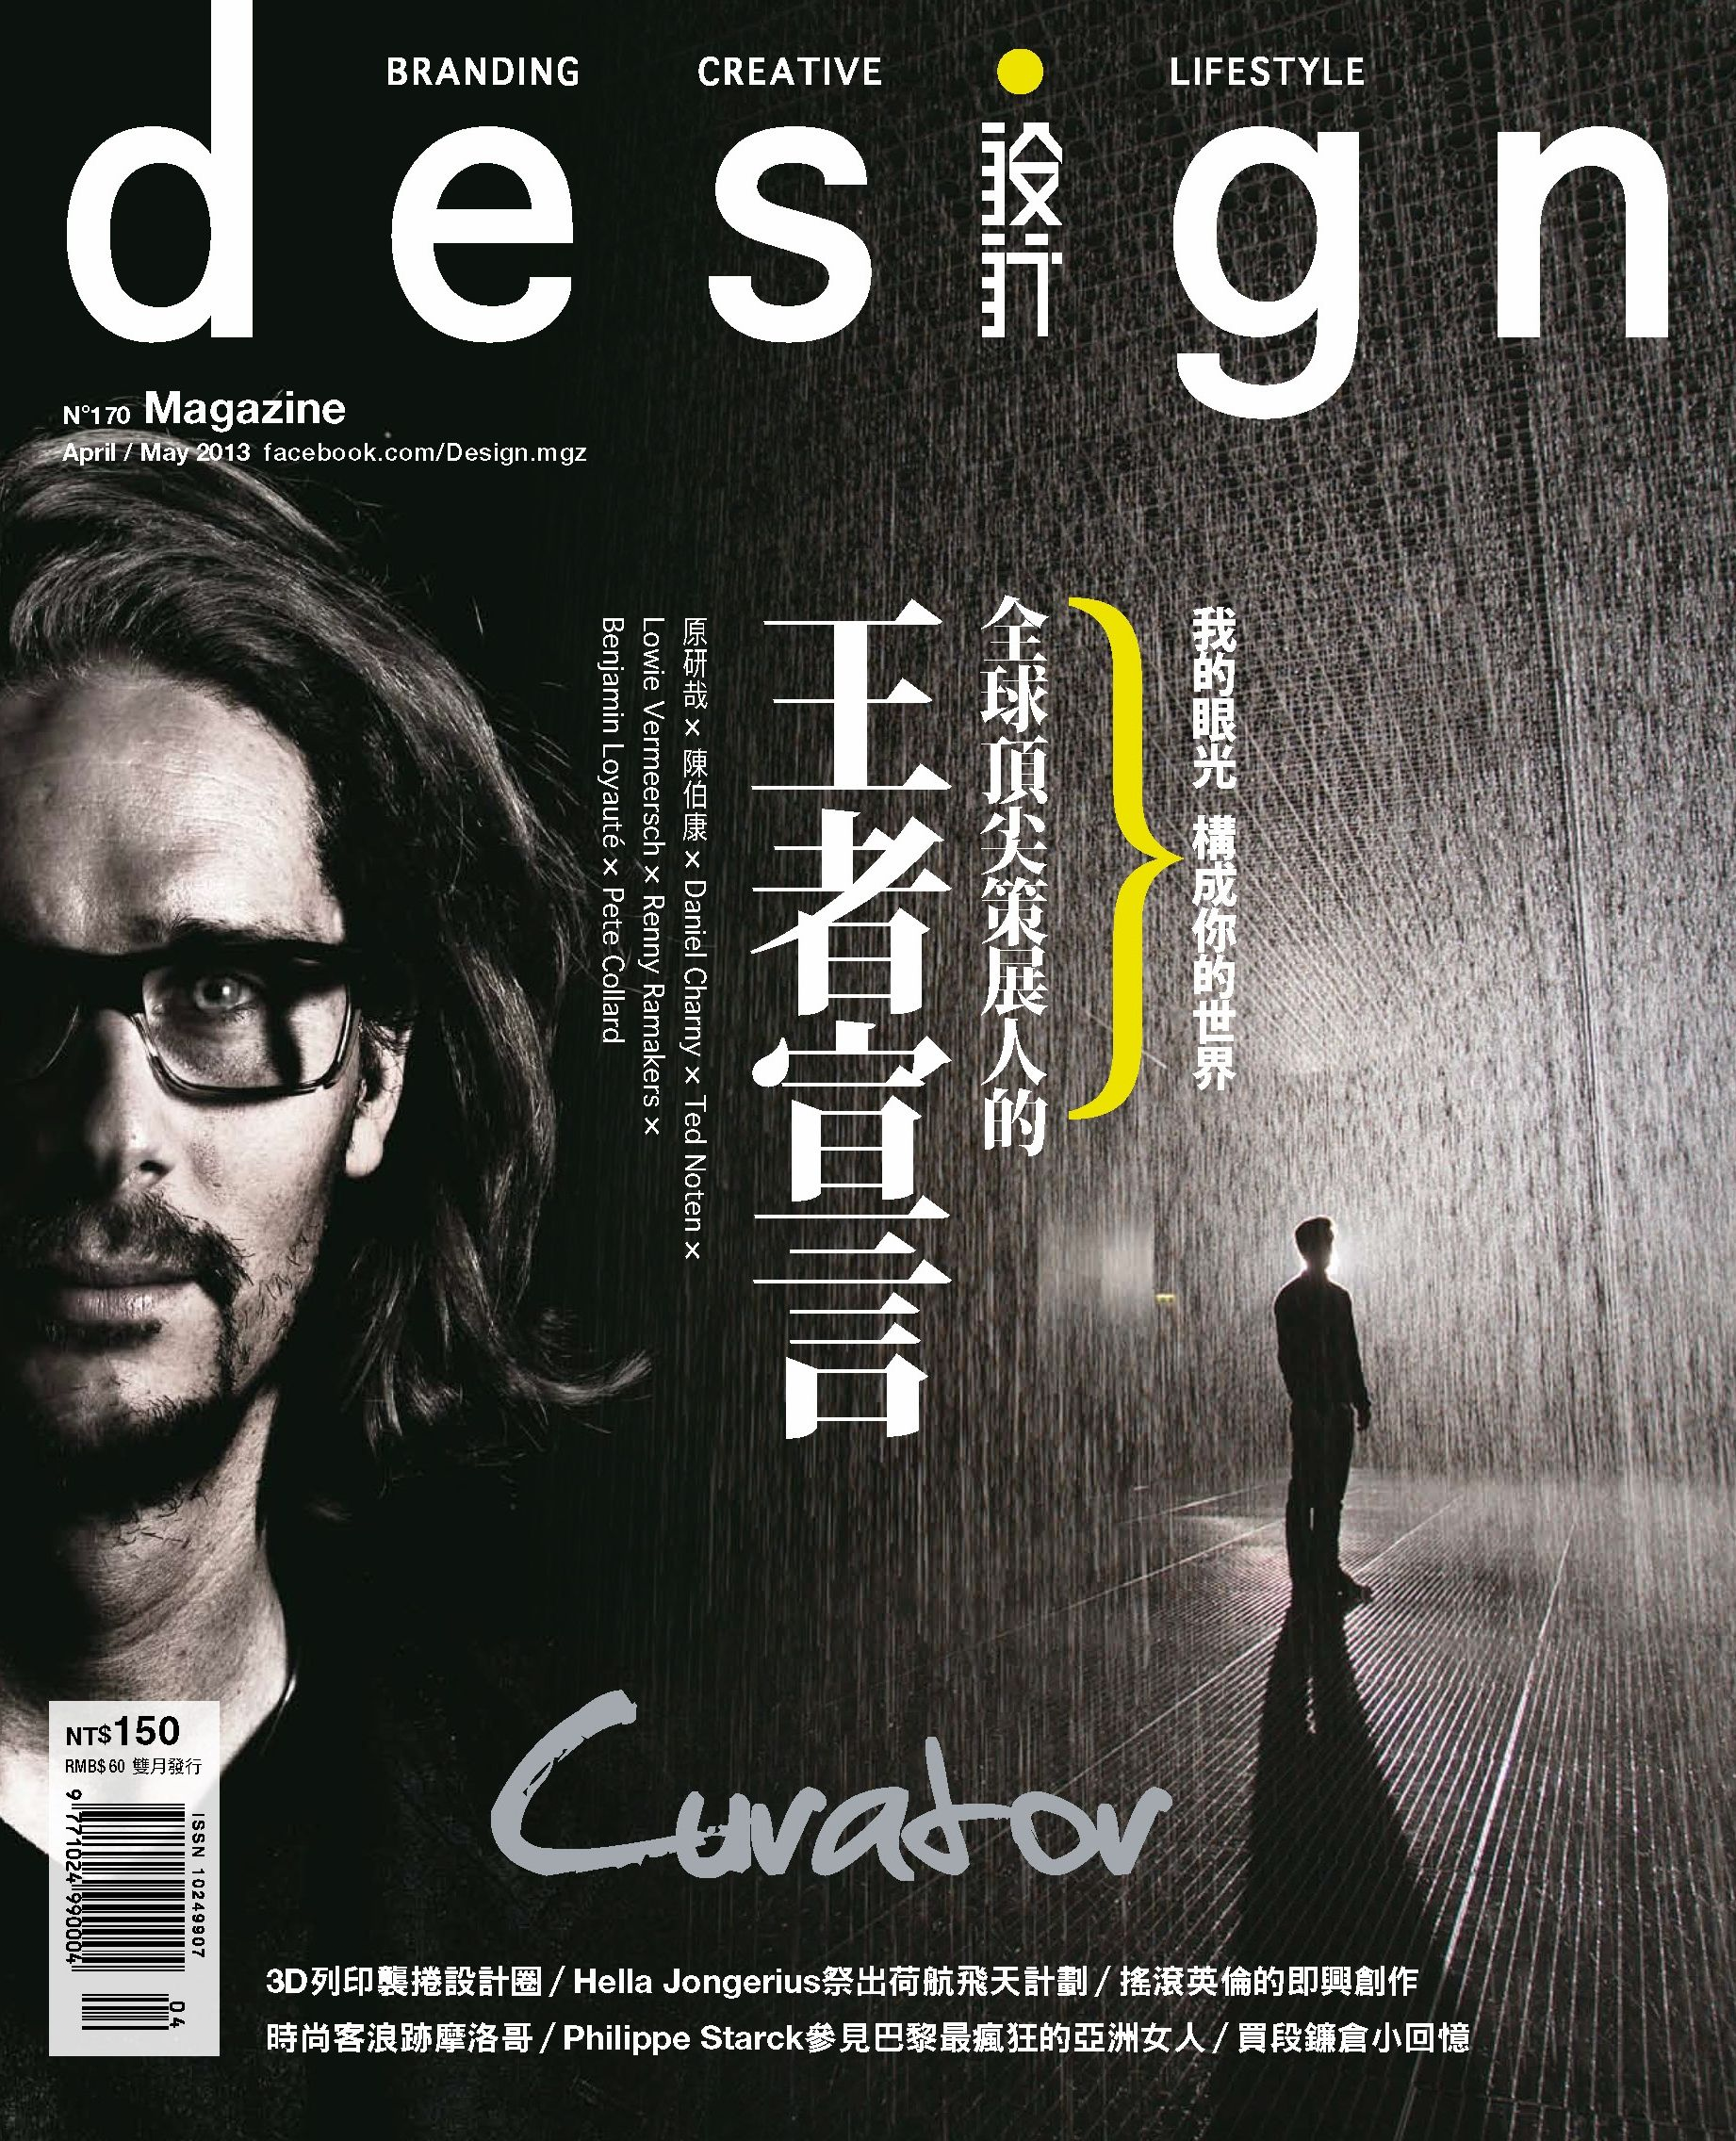 desing magazine | Everything about design | Pinterest: pinterest.com/pin/267119821621059952